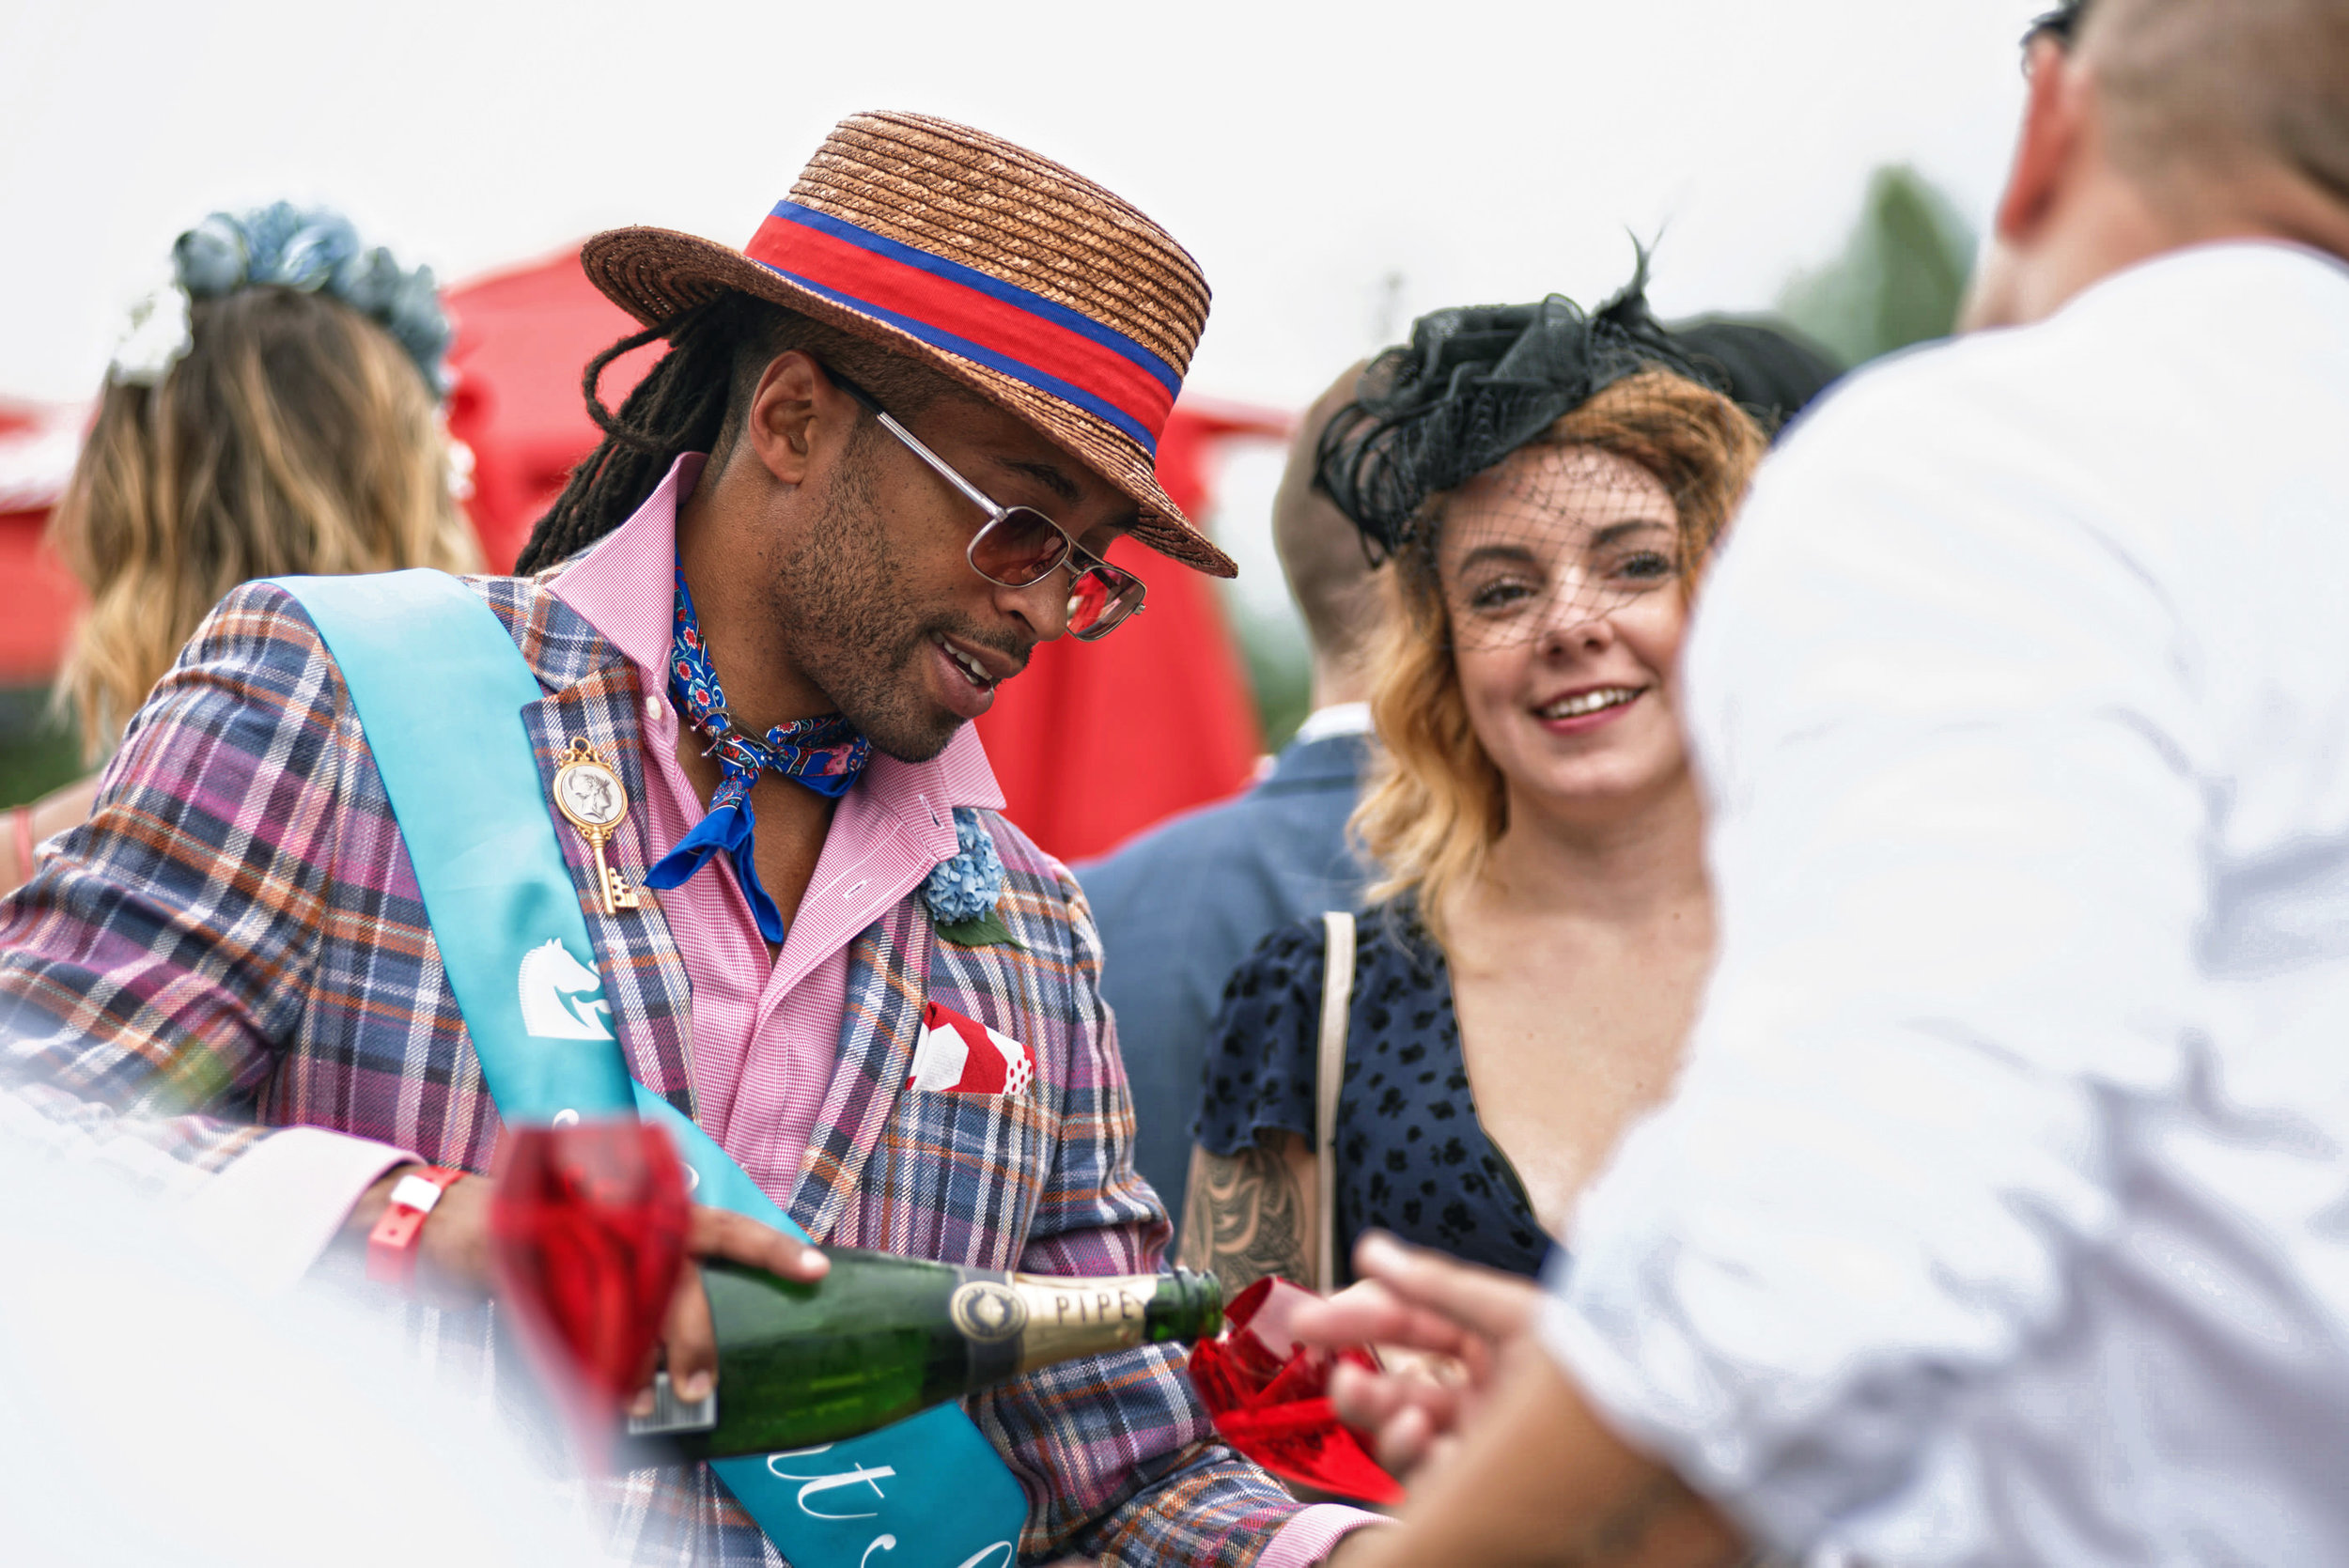 Deighton Cup 2017 - photo credit to Mark Lewis Exposure - 19.jpg